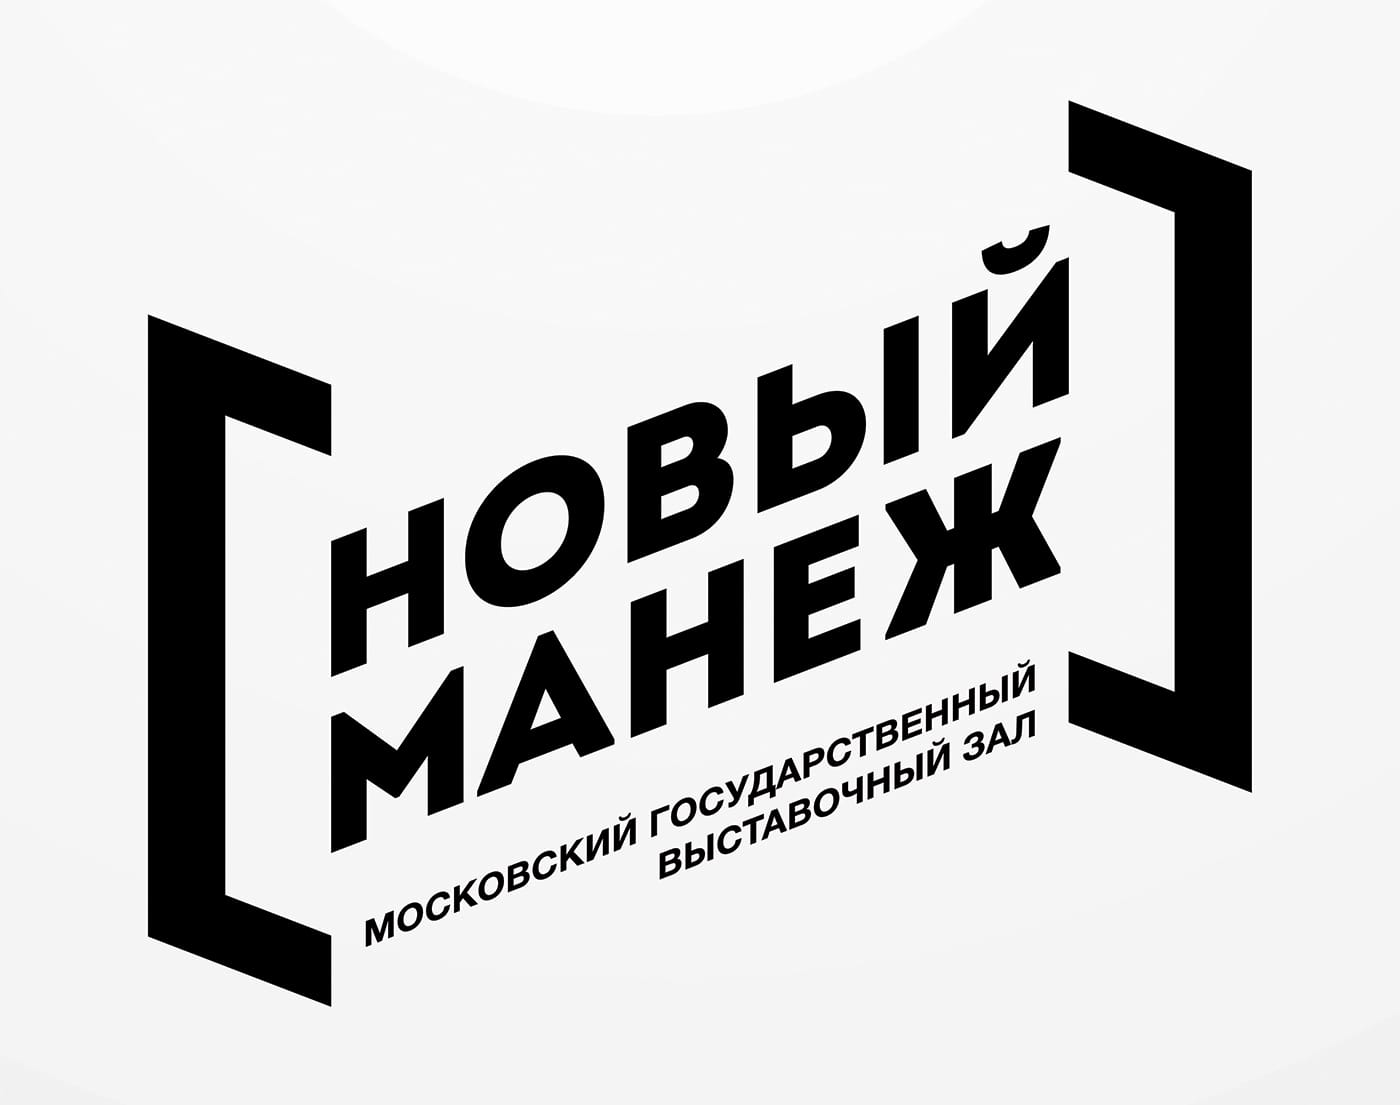 Visual identity for Novi Manezh